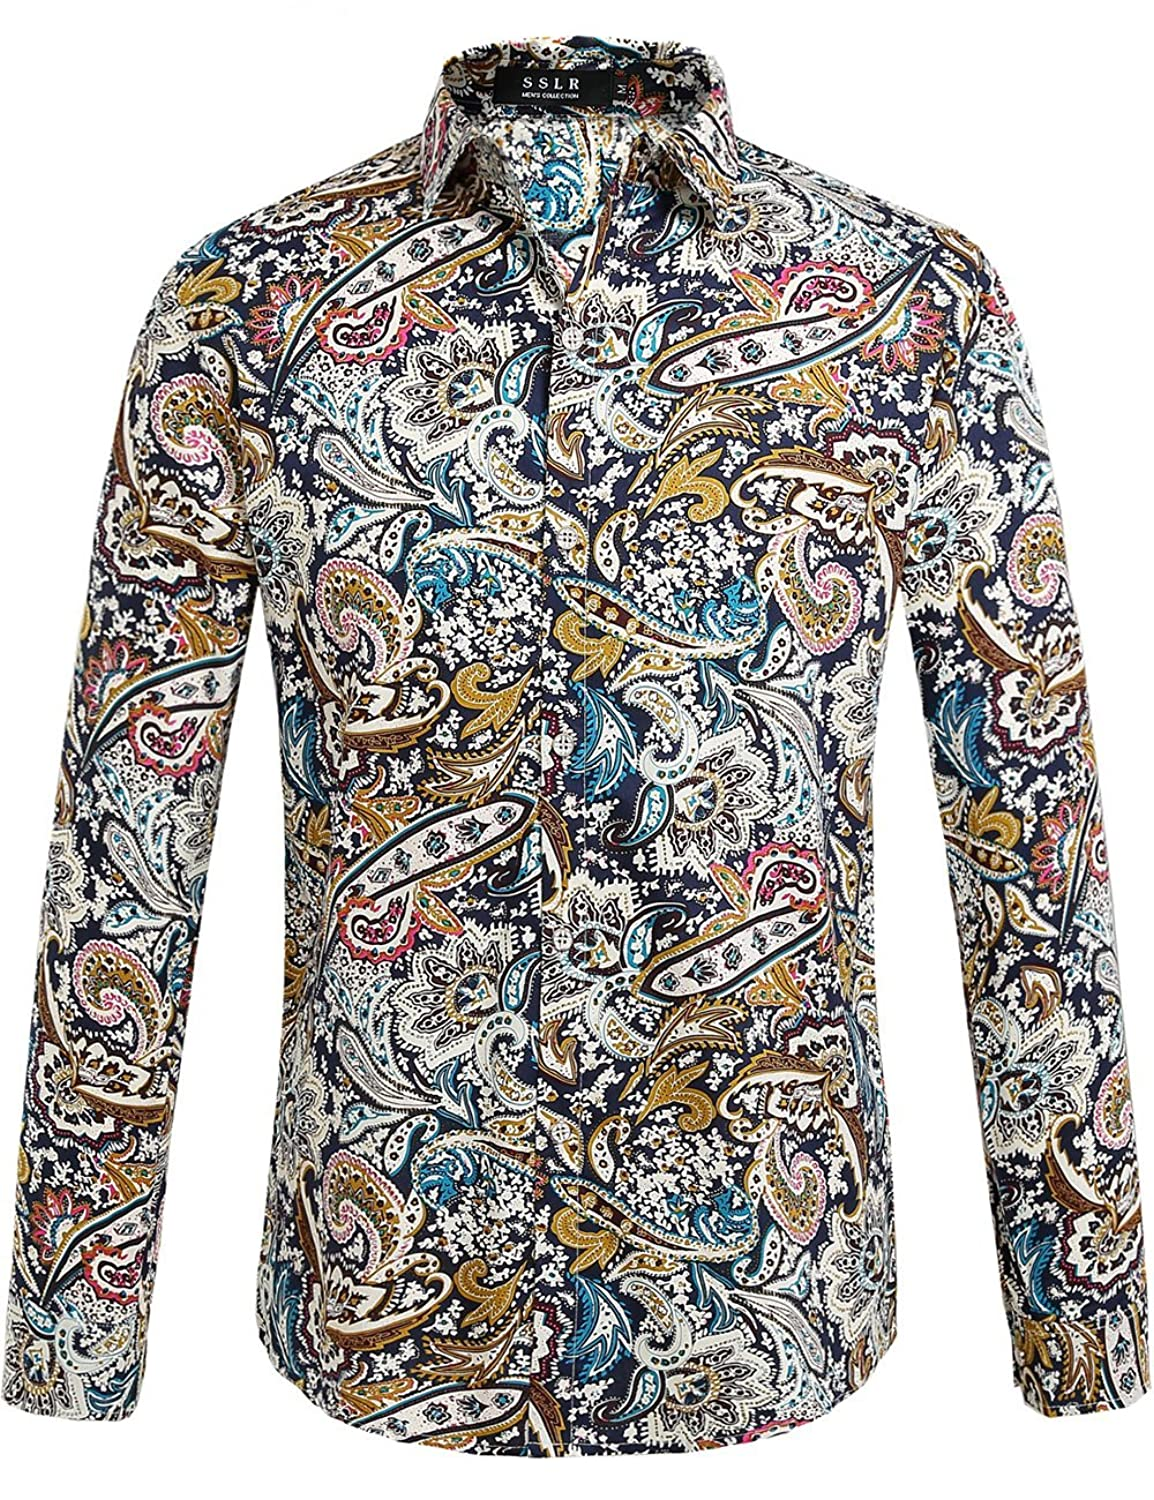 60s -70s  Men's Costumes : Hippie, Disco, Beatles SSLR Mens Paisley Cotton Long Sleeve Casual Button Down Shirt $26.00 AT vintagedancer.com